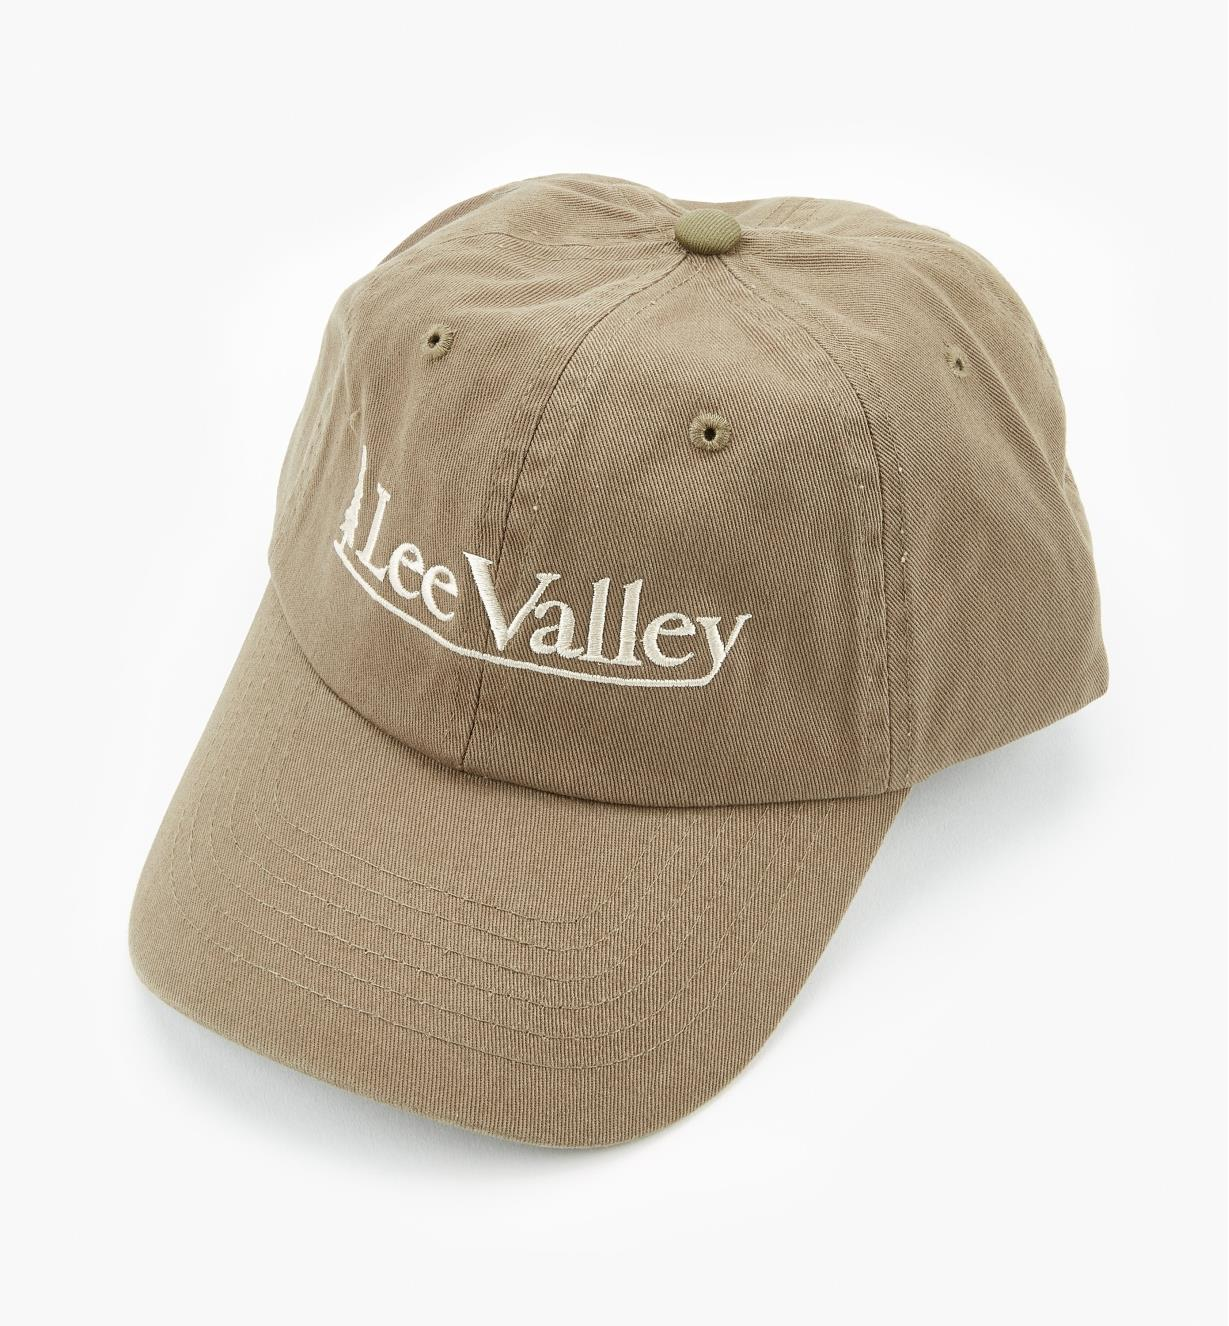 67K9922 - Lee Valley Baseball Cap, Olive